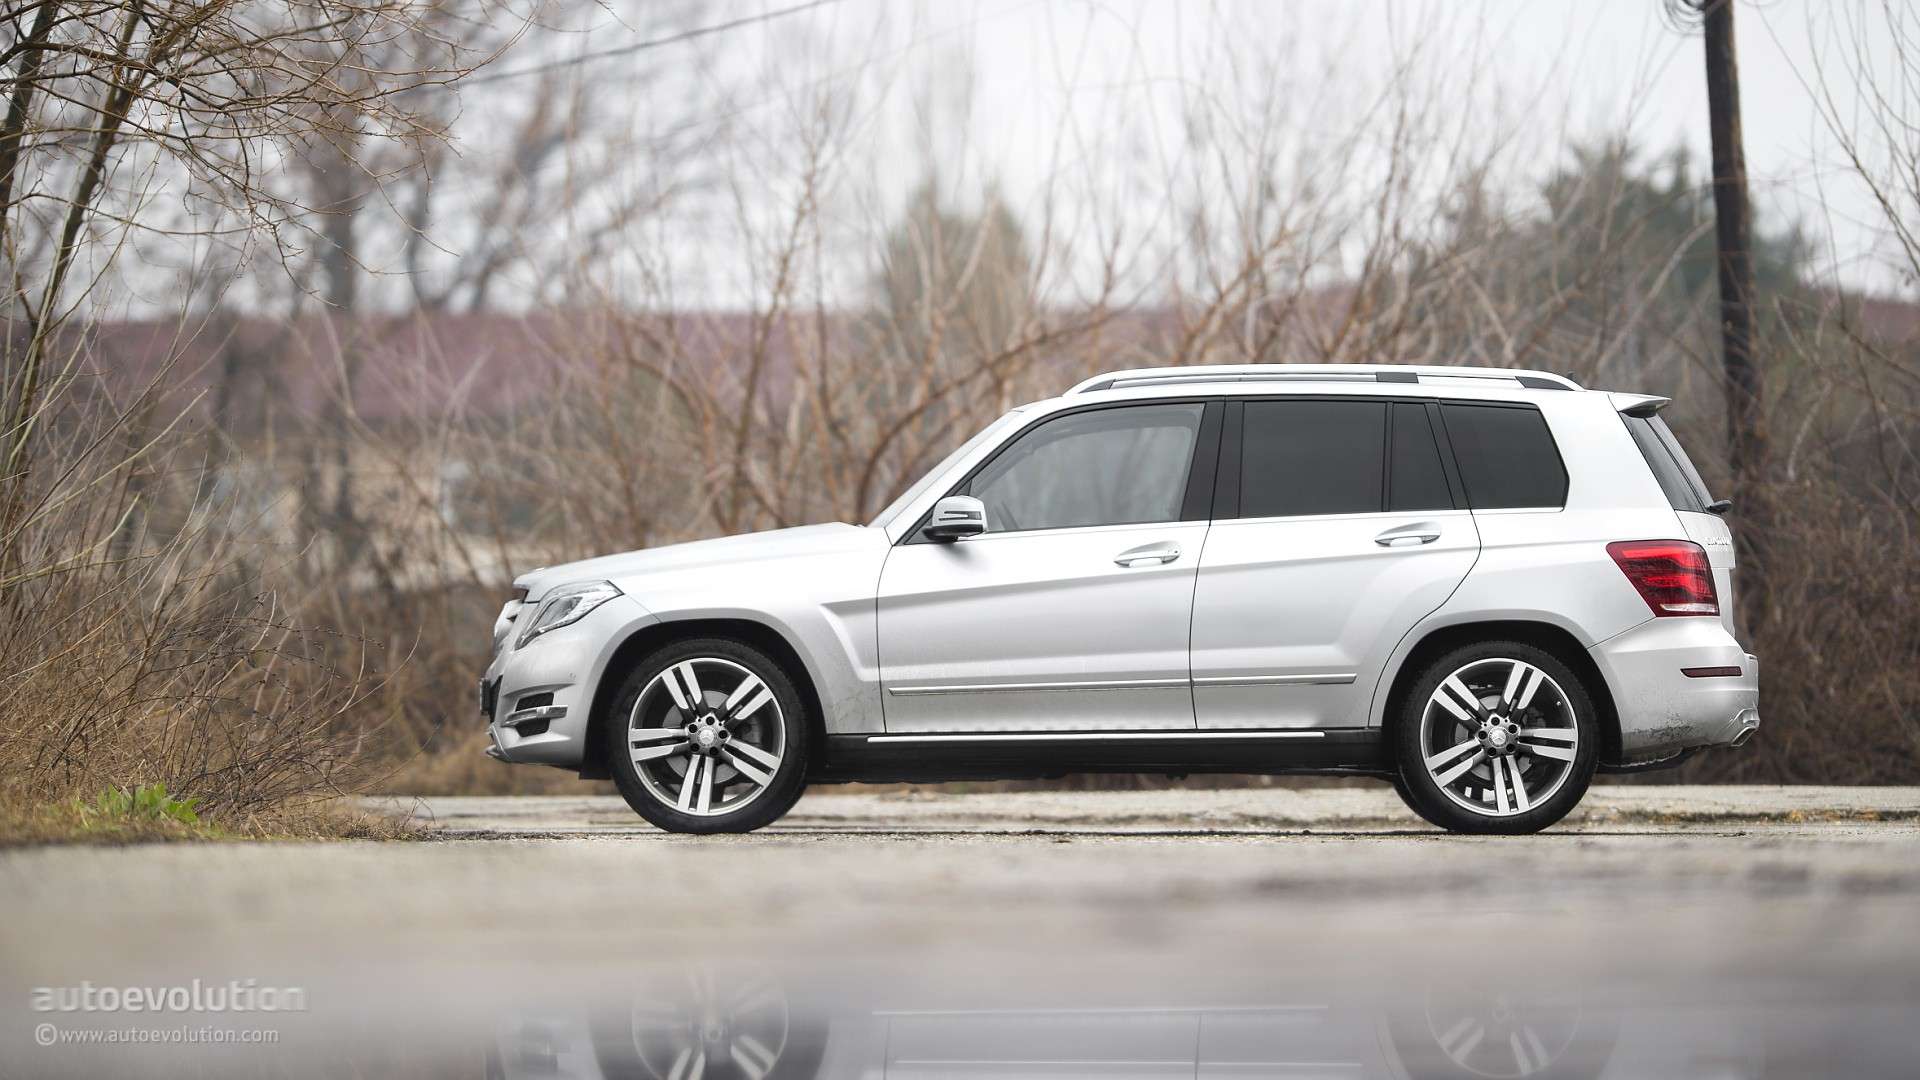 2015 mercedes benz glk class review autoevolution for Mercedes benz glk class